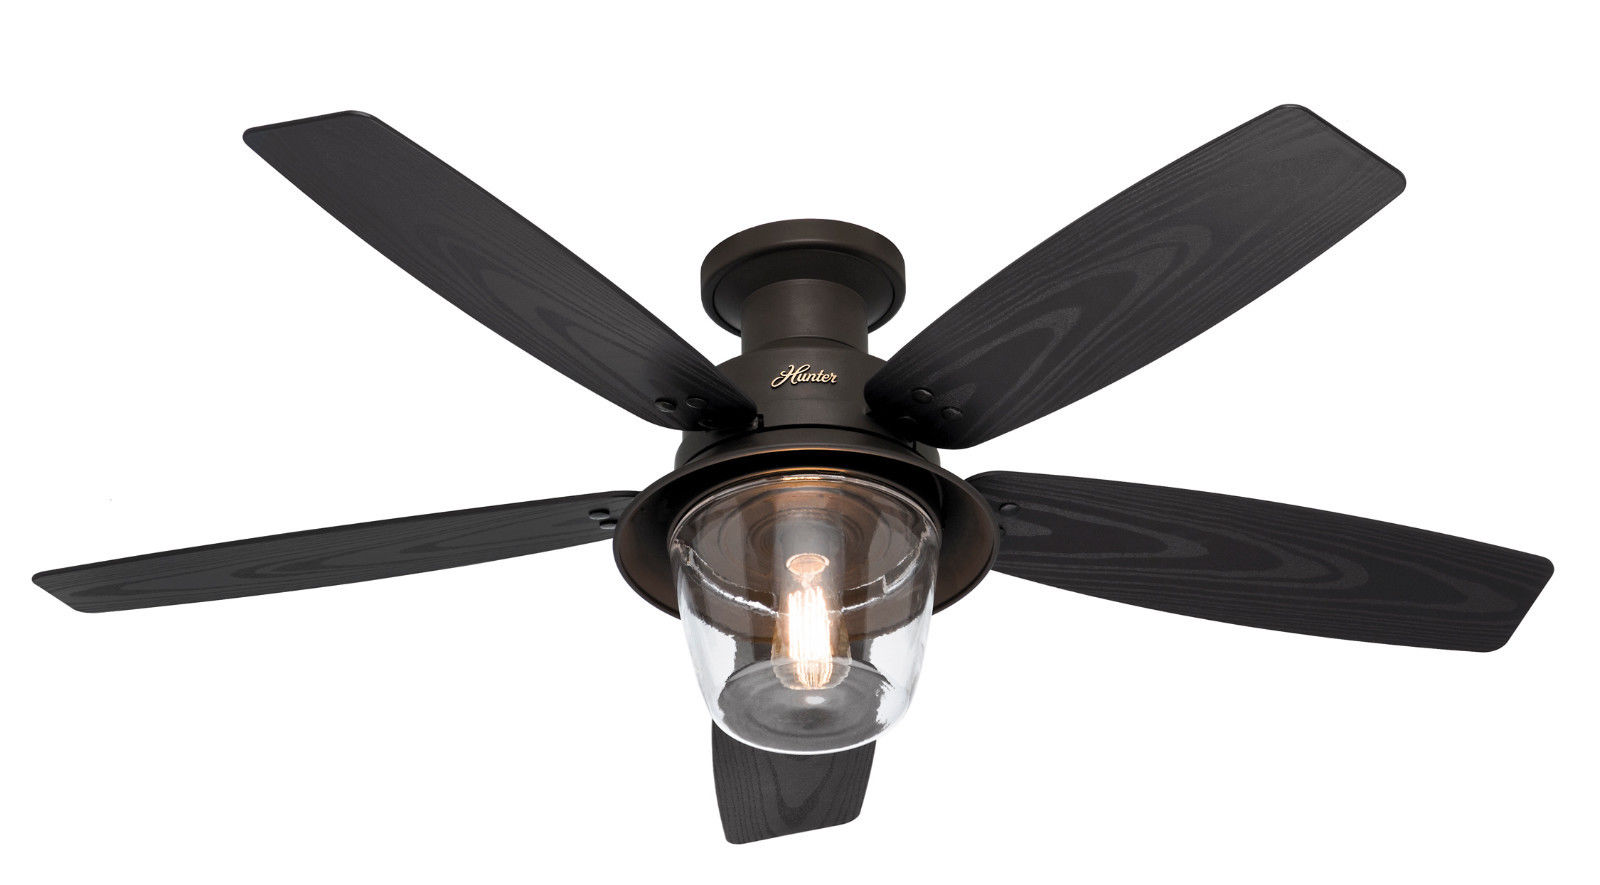 Ceiling Fans With Lights : Reasons to install low profile ceiling fan light kit